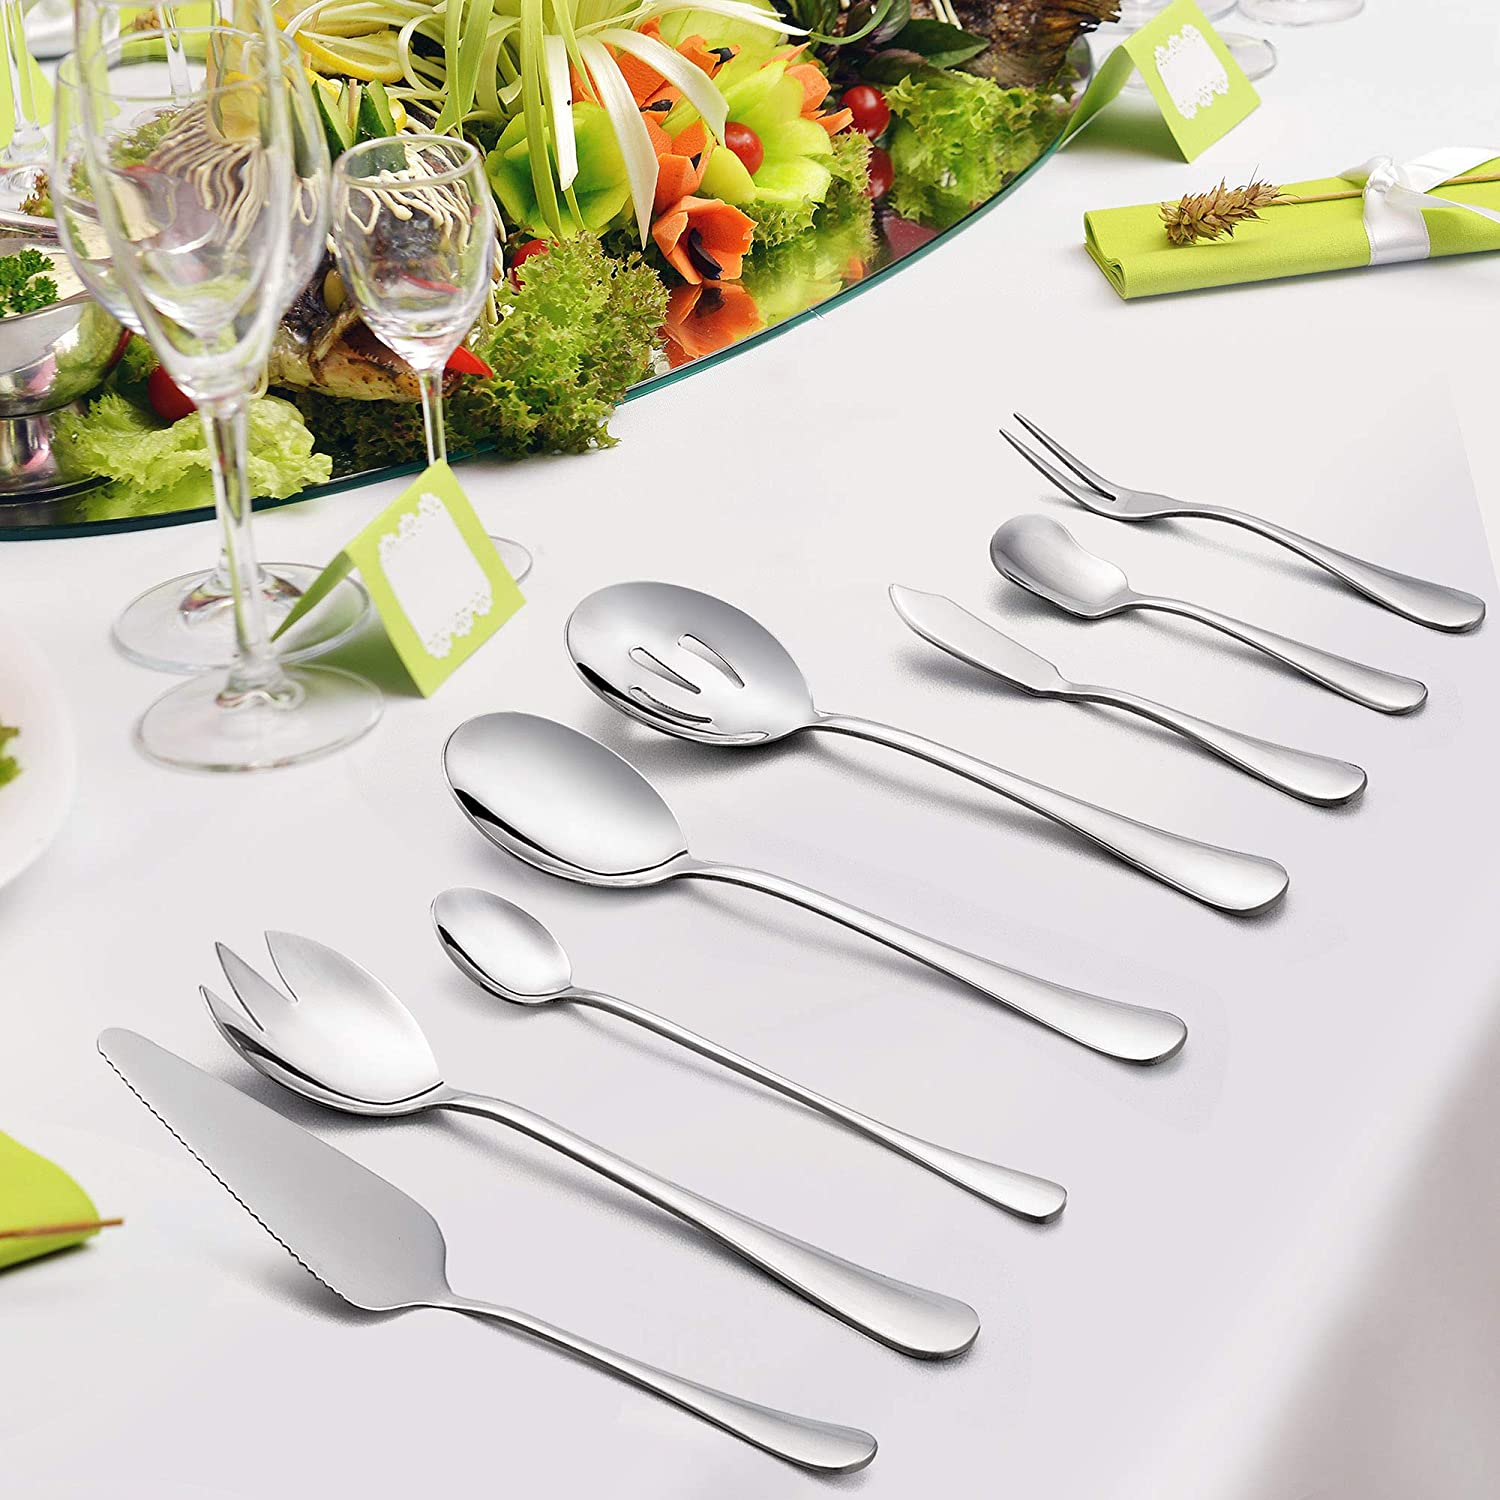 48-Piece Flatware Set Service for 8, Stainless Steel Cutlery Eating Utensils, Mirror Finish, Dishwasher Safe